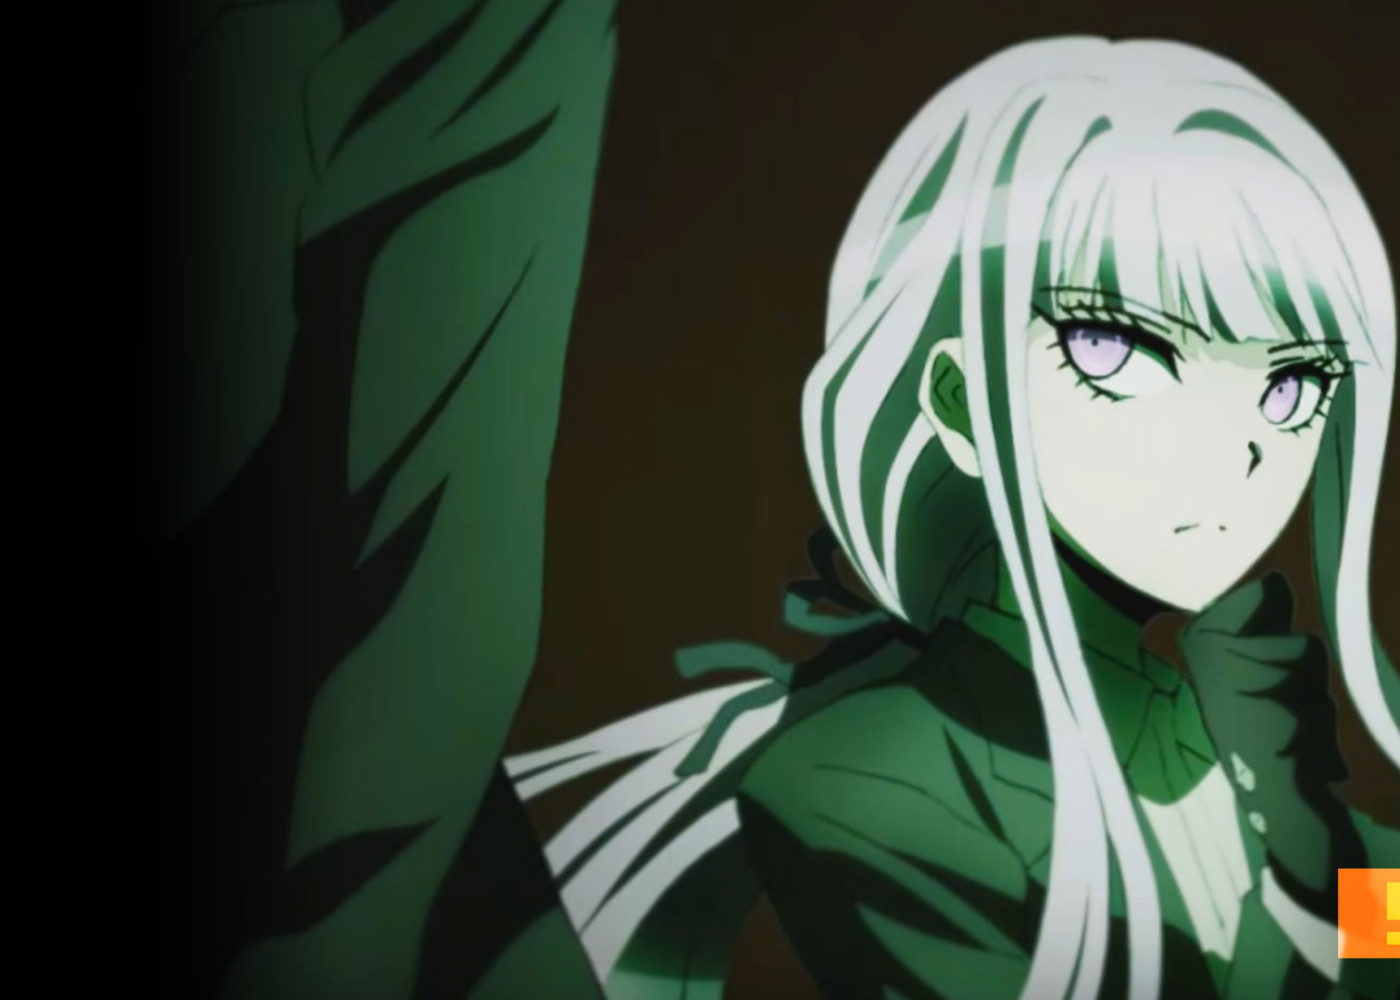 Danganronpa 3 The End Of Hopes Peak Academy Anime Gets Green Lit